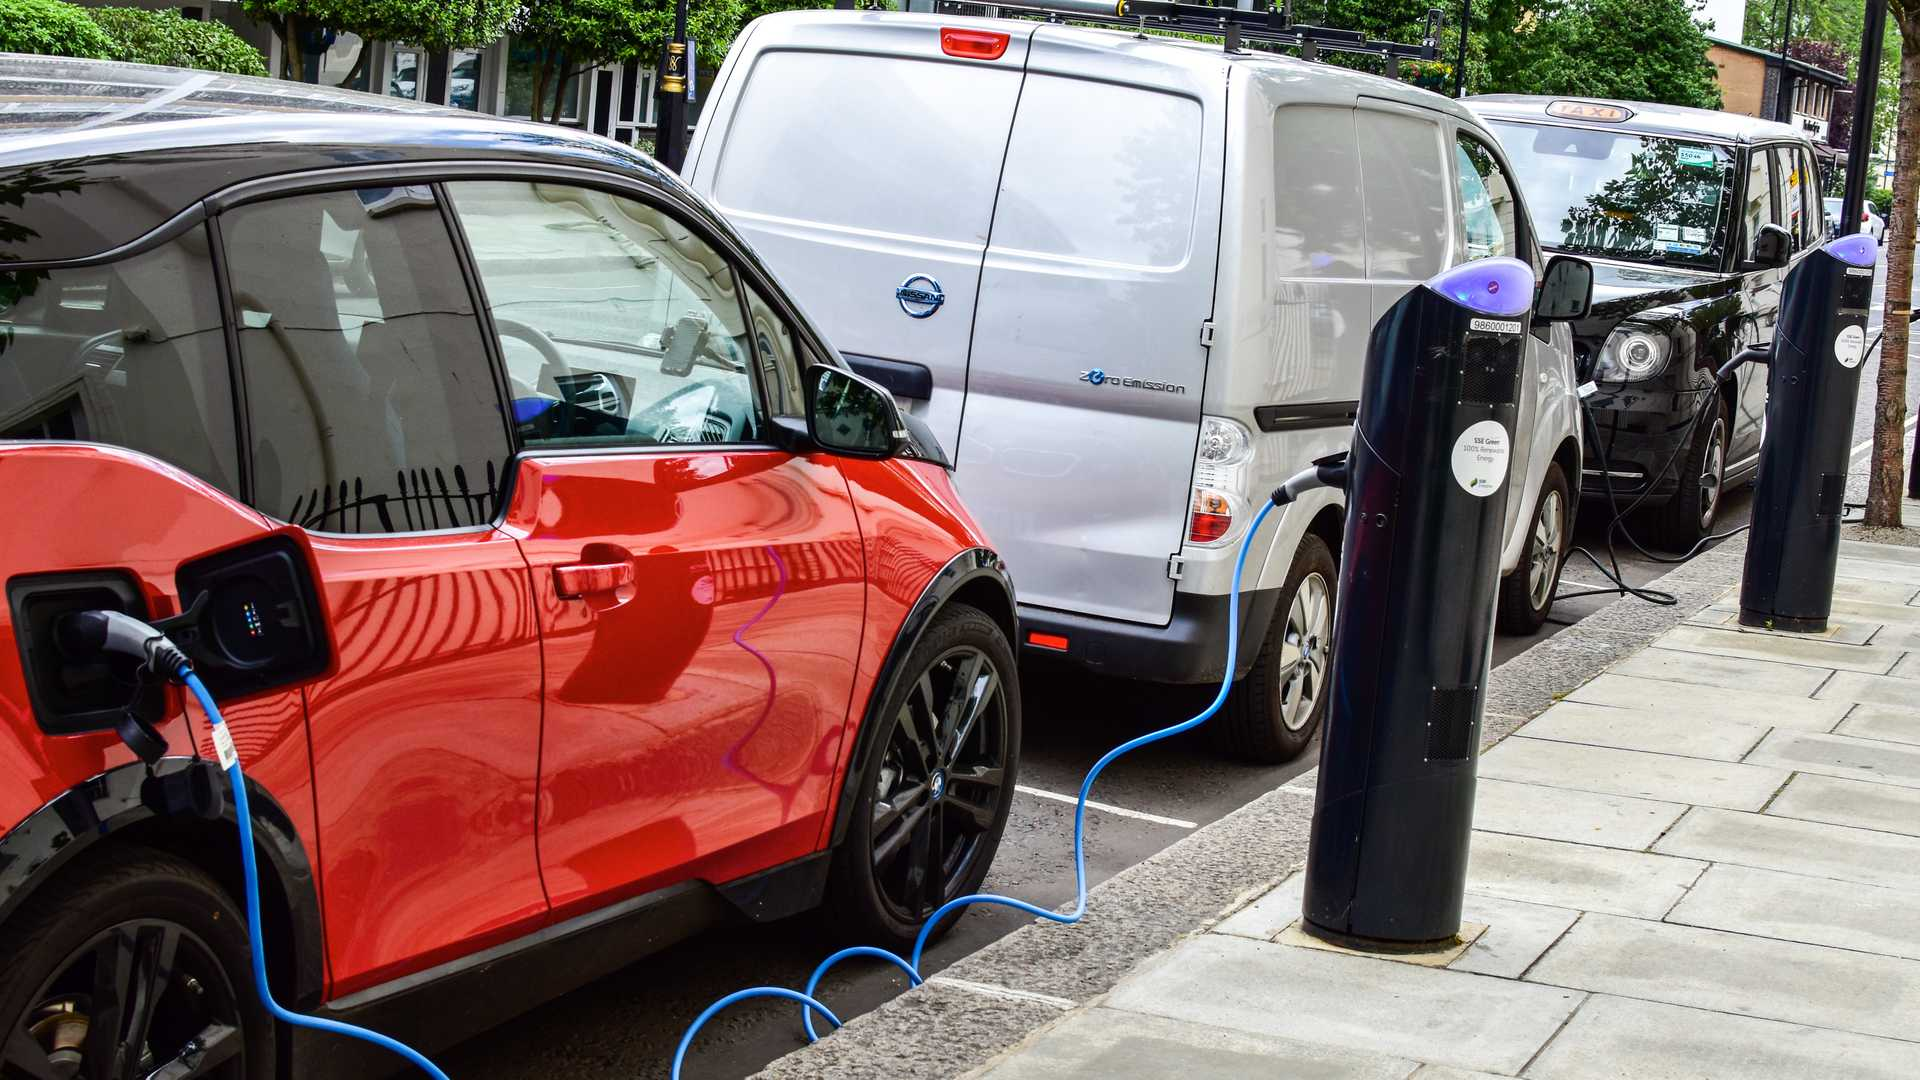 Two-thirds of us expect electric vehicles to be 'normal' by 2030